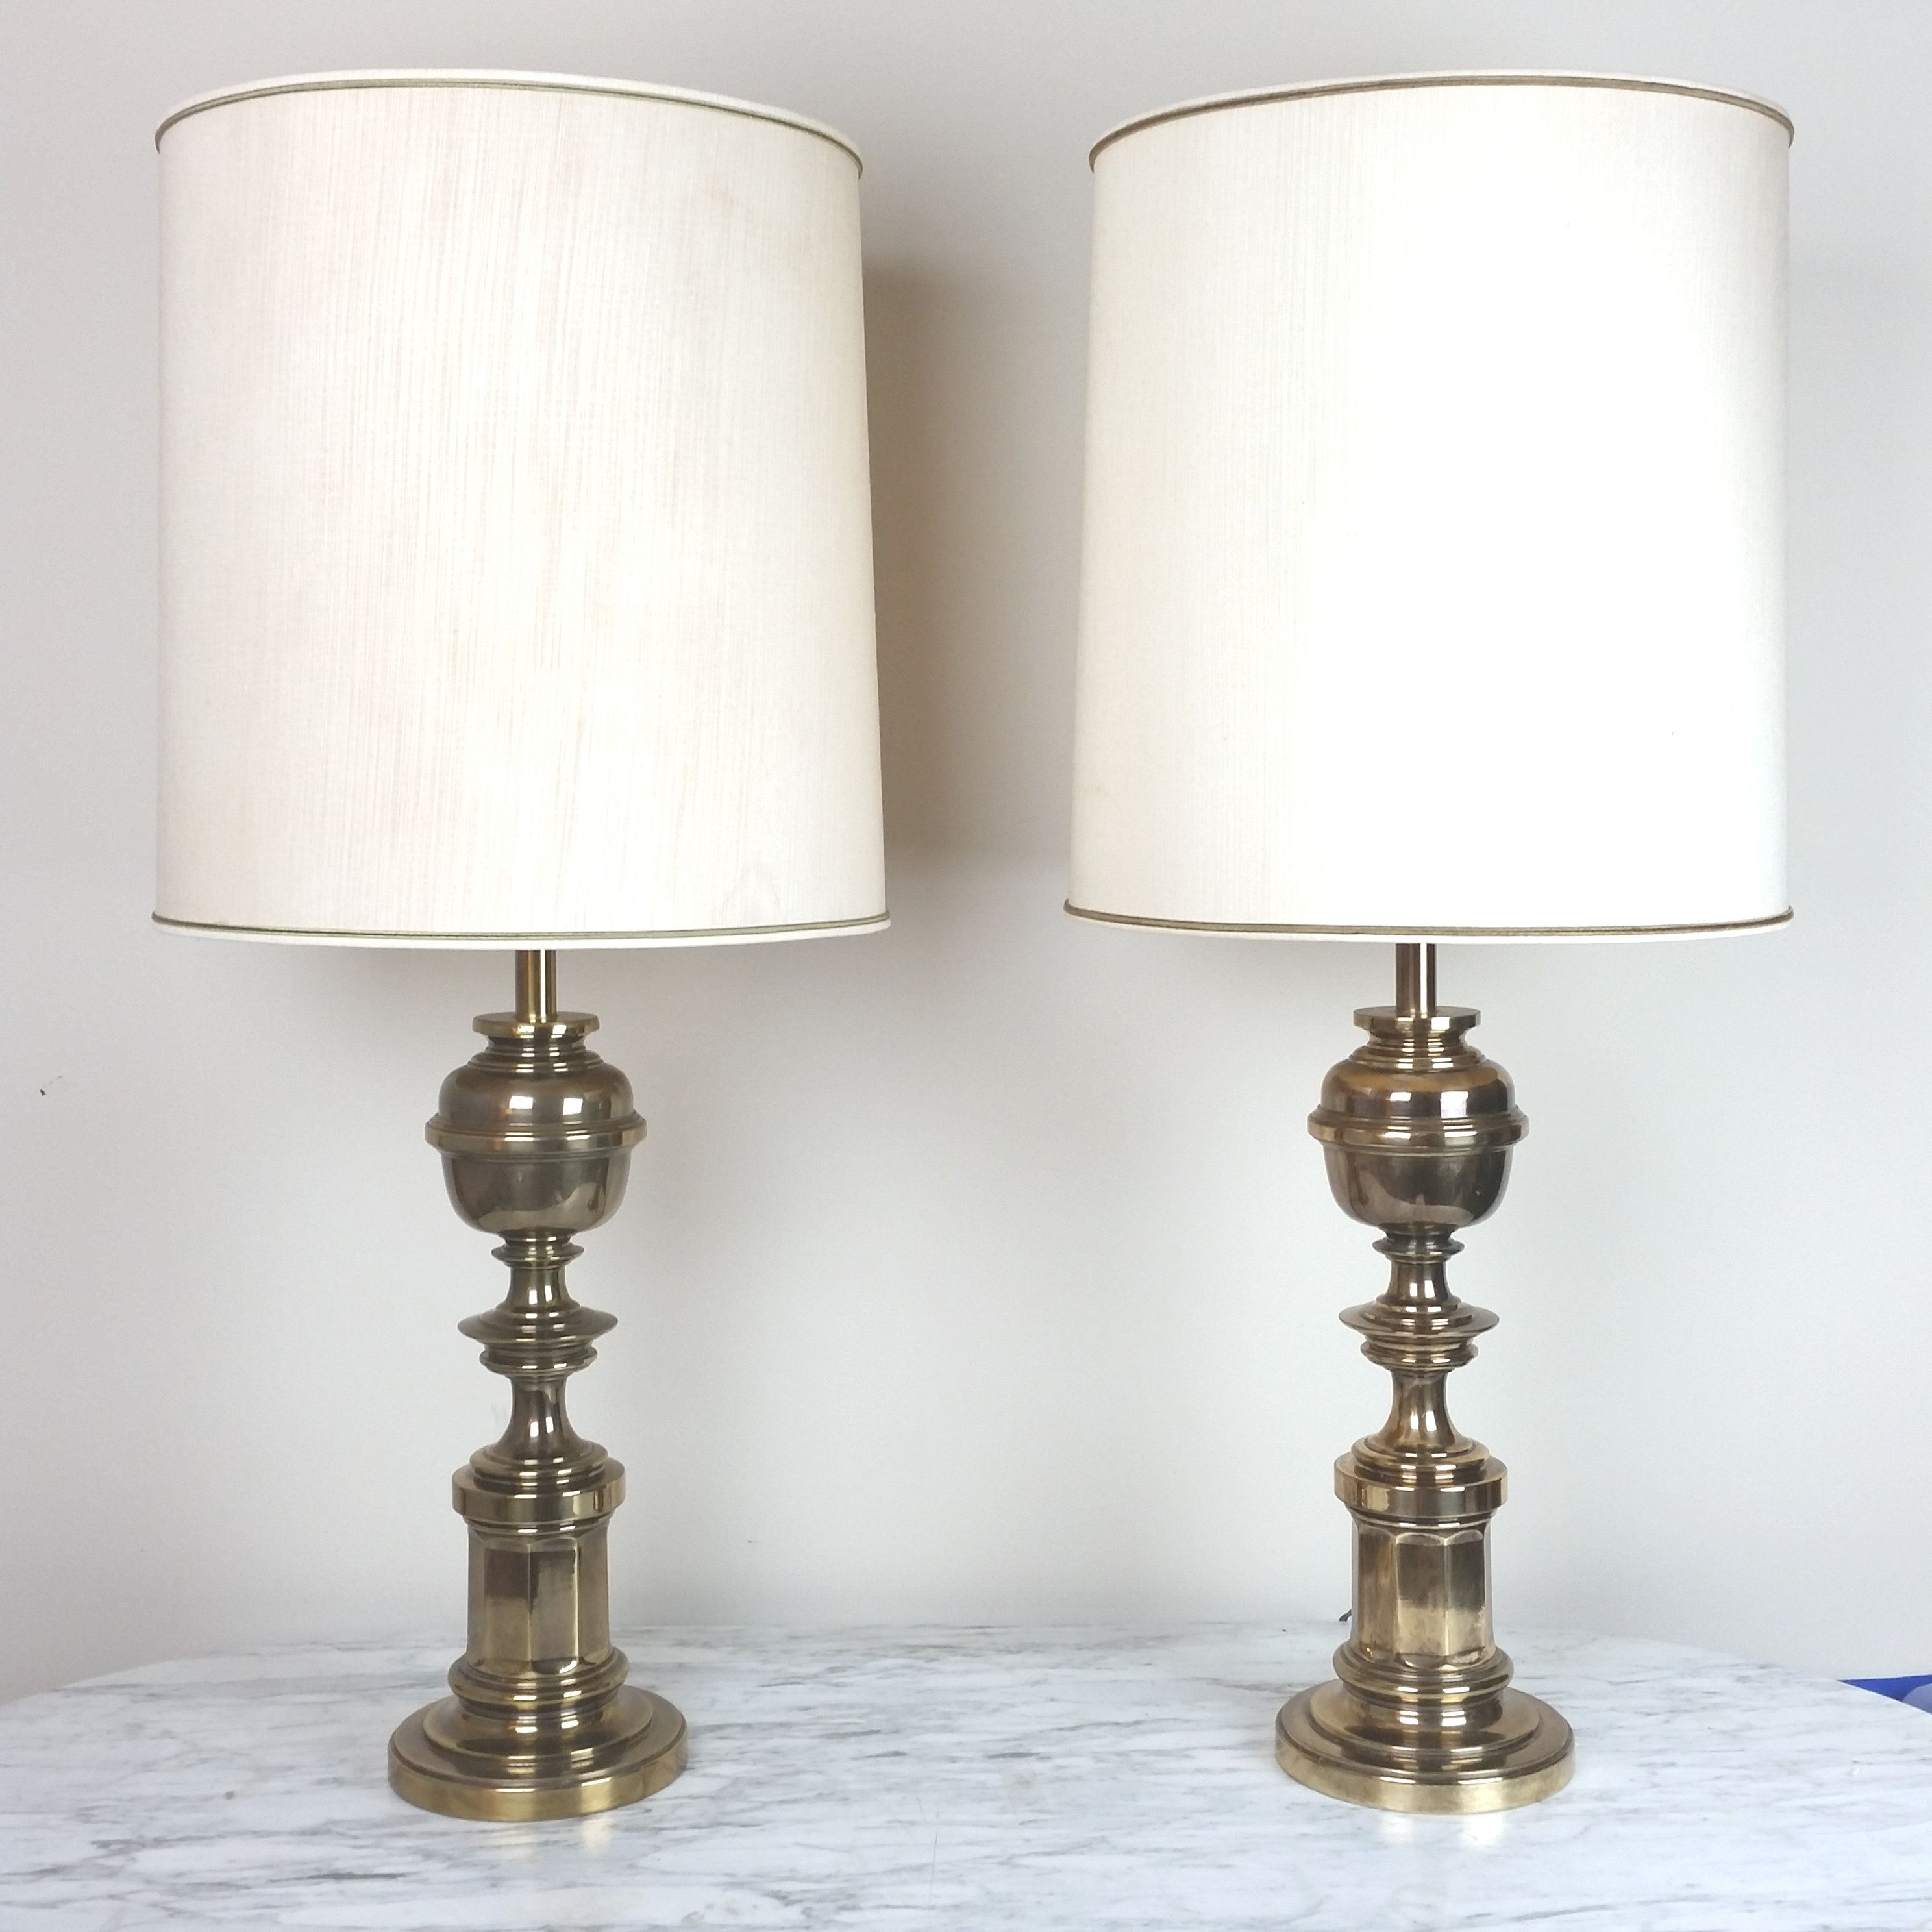 Pair Stiffel Brass Table Lamps Mid Century Living Room Decor In 2020 Brass Table Lamps Mid Century Living Room Decor Table Lamp